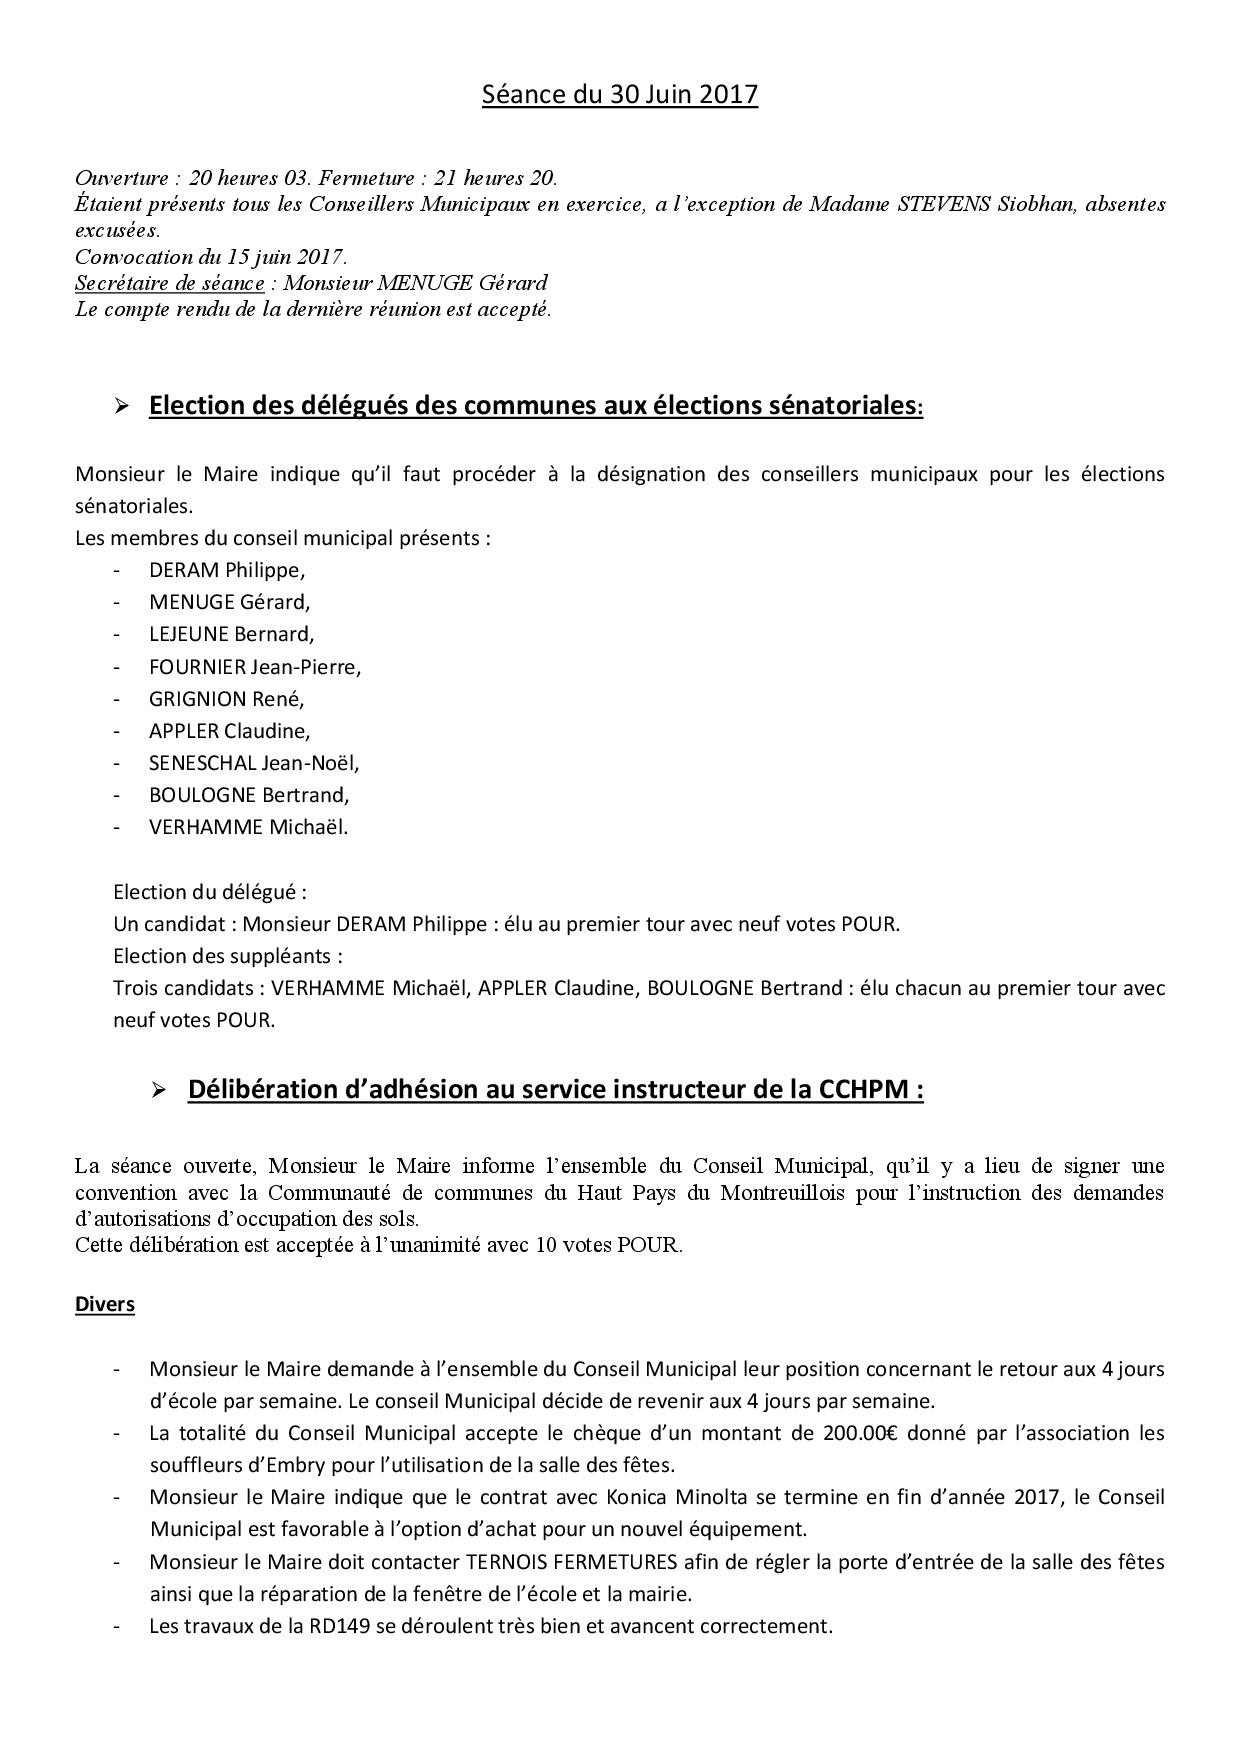 C users verhamme documents mairie doc 29122017 seance du 30 juin 2017